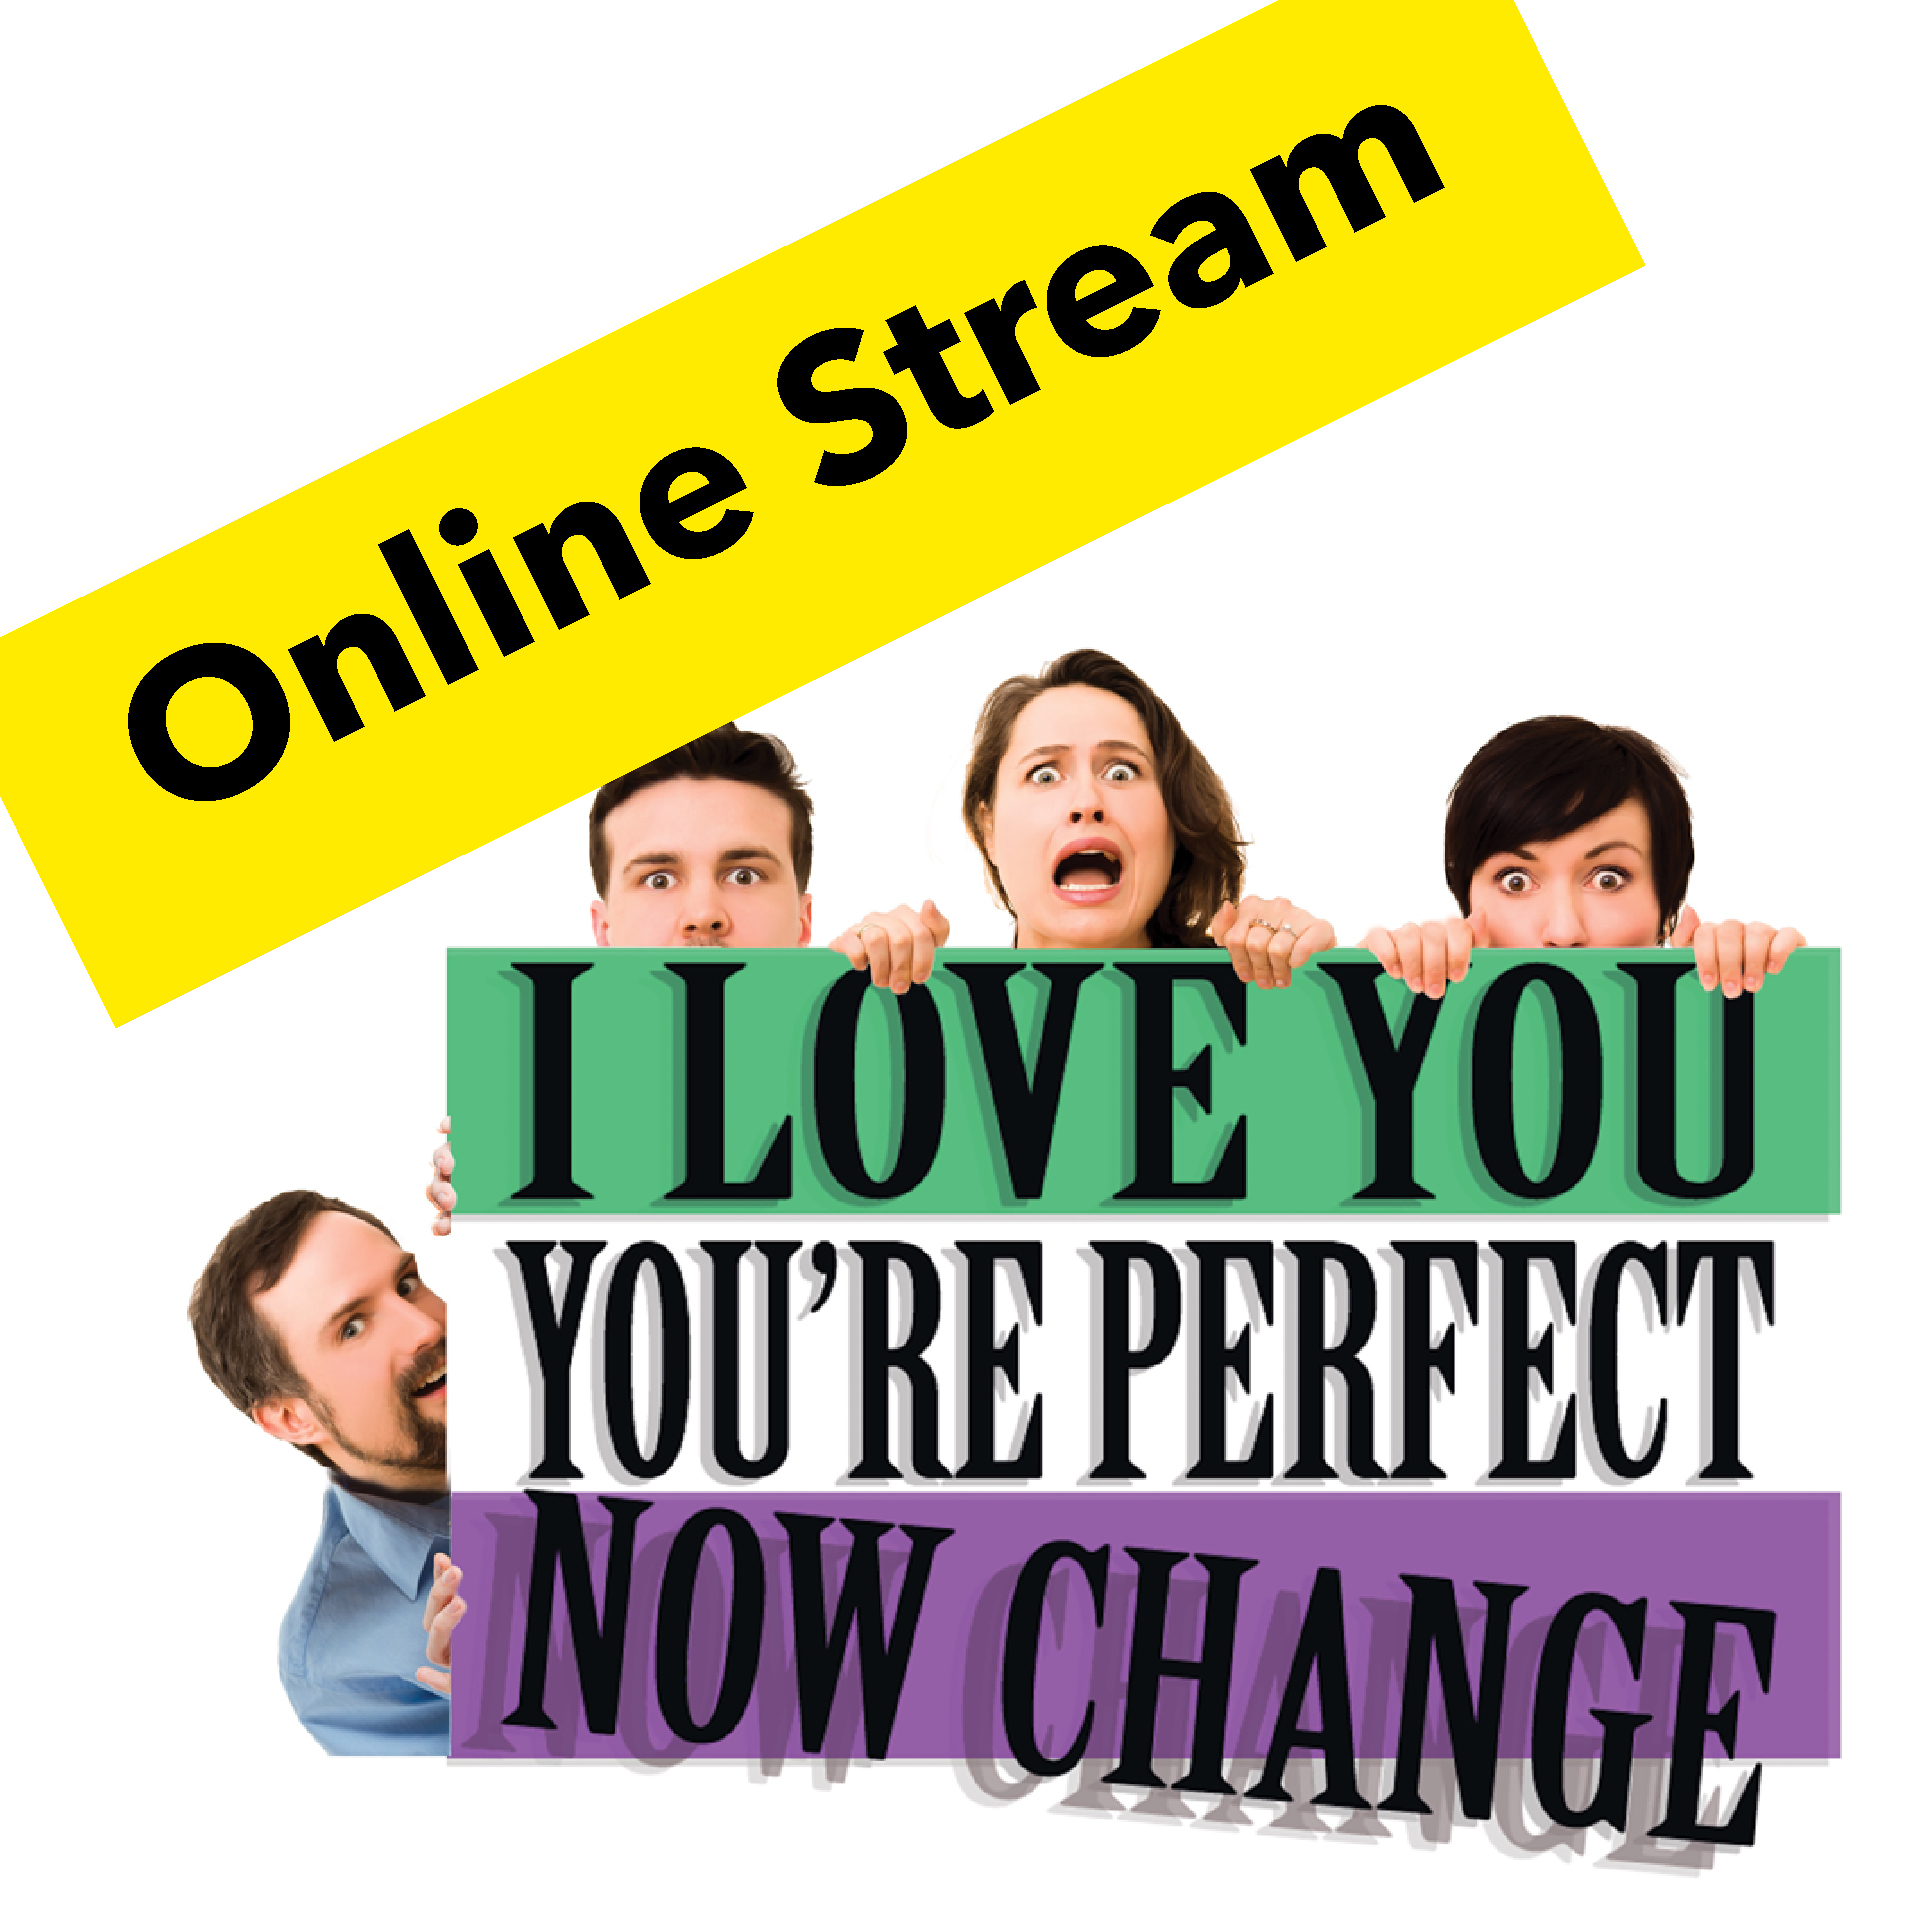 I LOVE YOU, YOU'RE PERFECT, NOW CHANGE – ONLINE STREAM